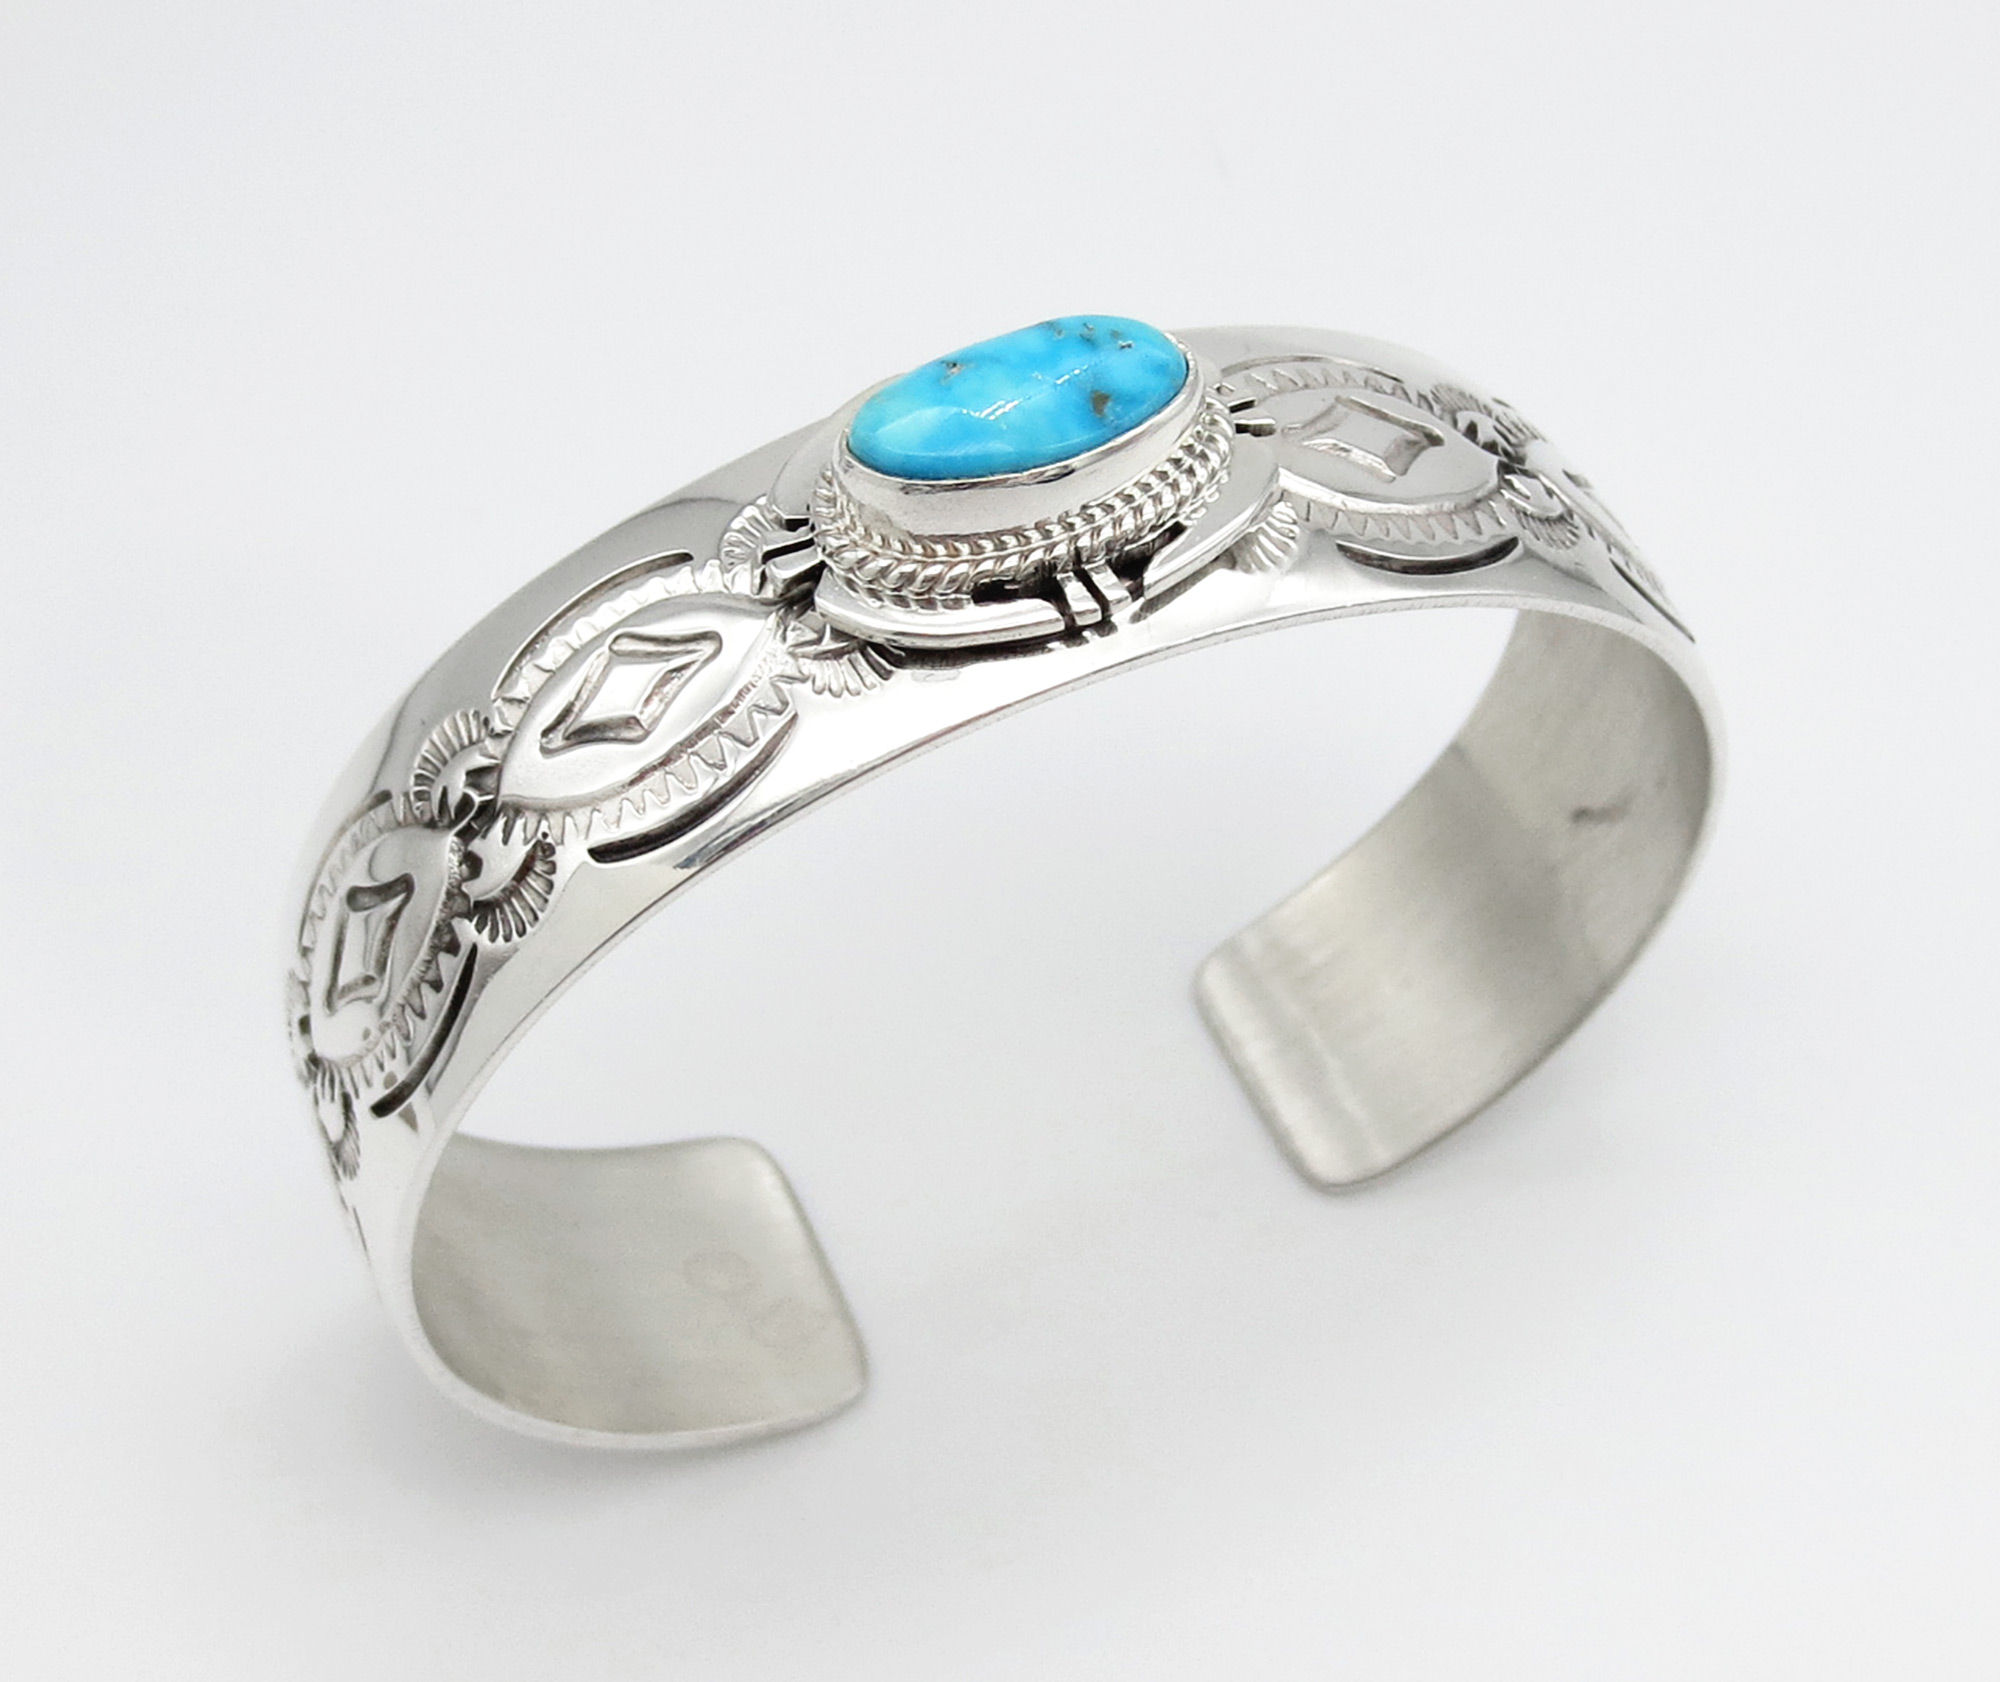 Turquoise & Sterling Silver Bracelet Native American Jewelry - 3961sn